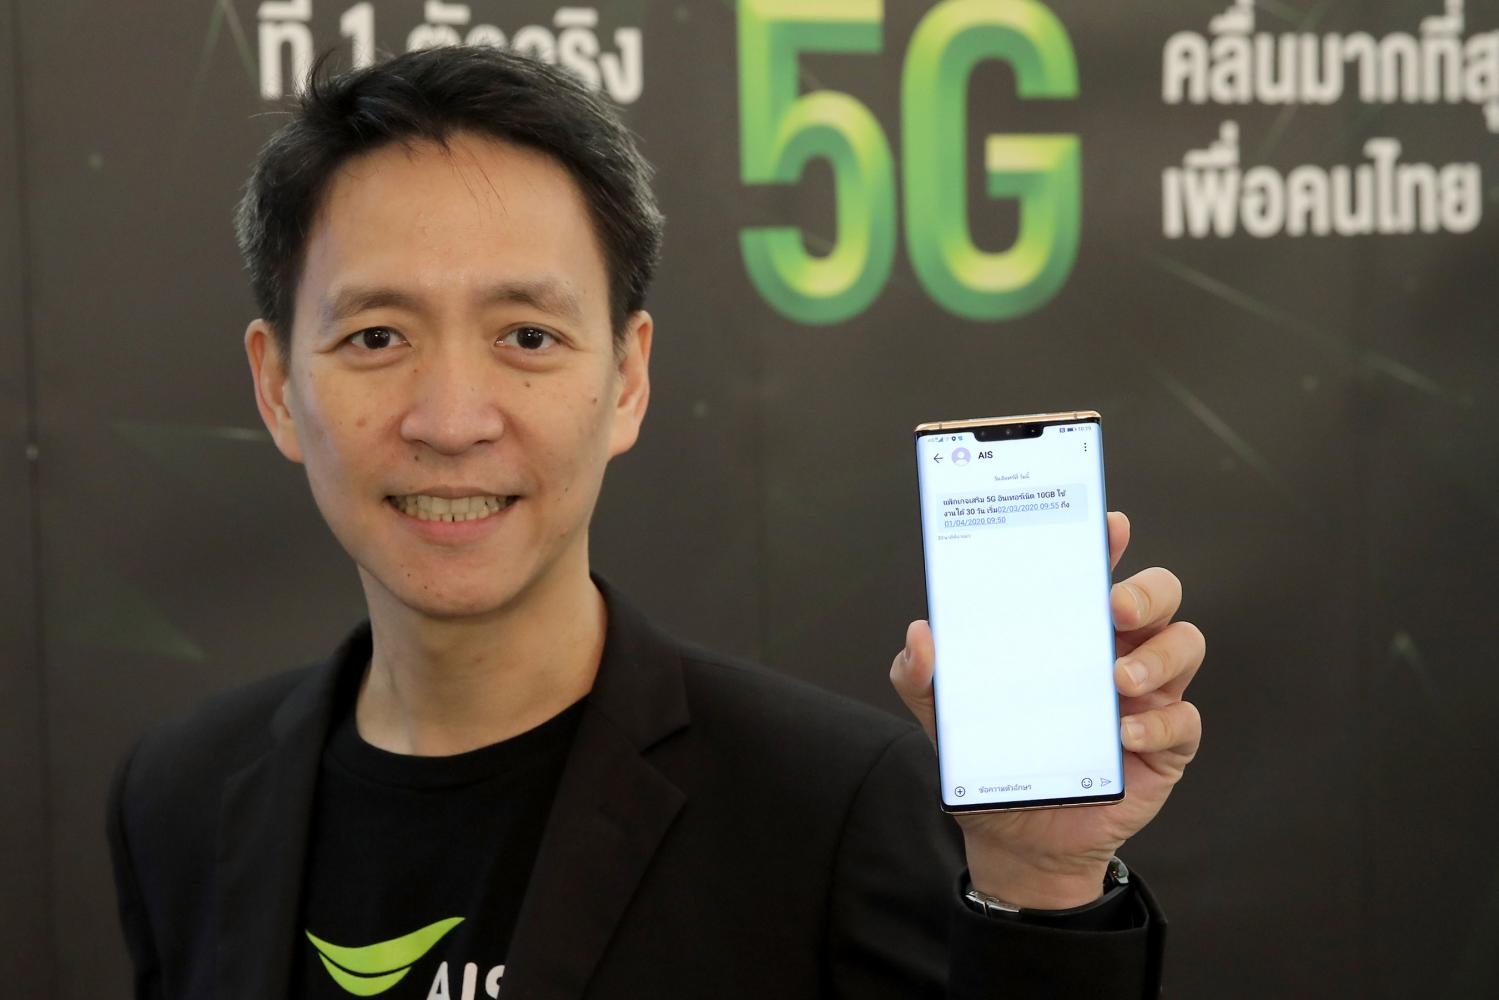 Mr Pratthana says 5G service on AIS 5G-enabled phones will be ready for Thais to use on Thursday.